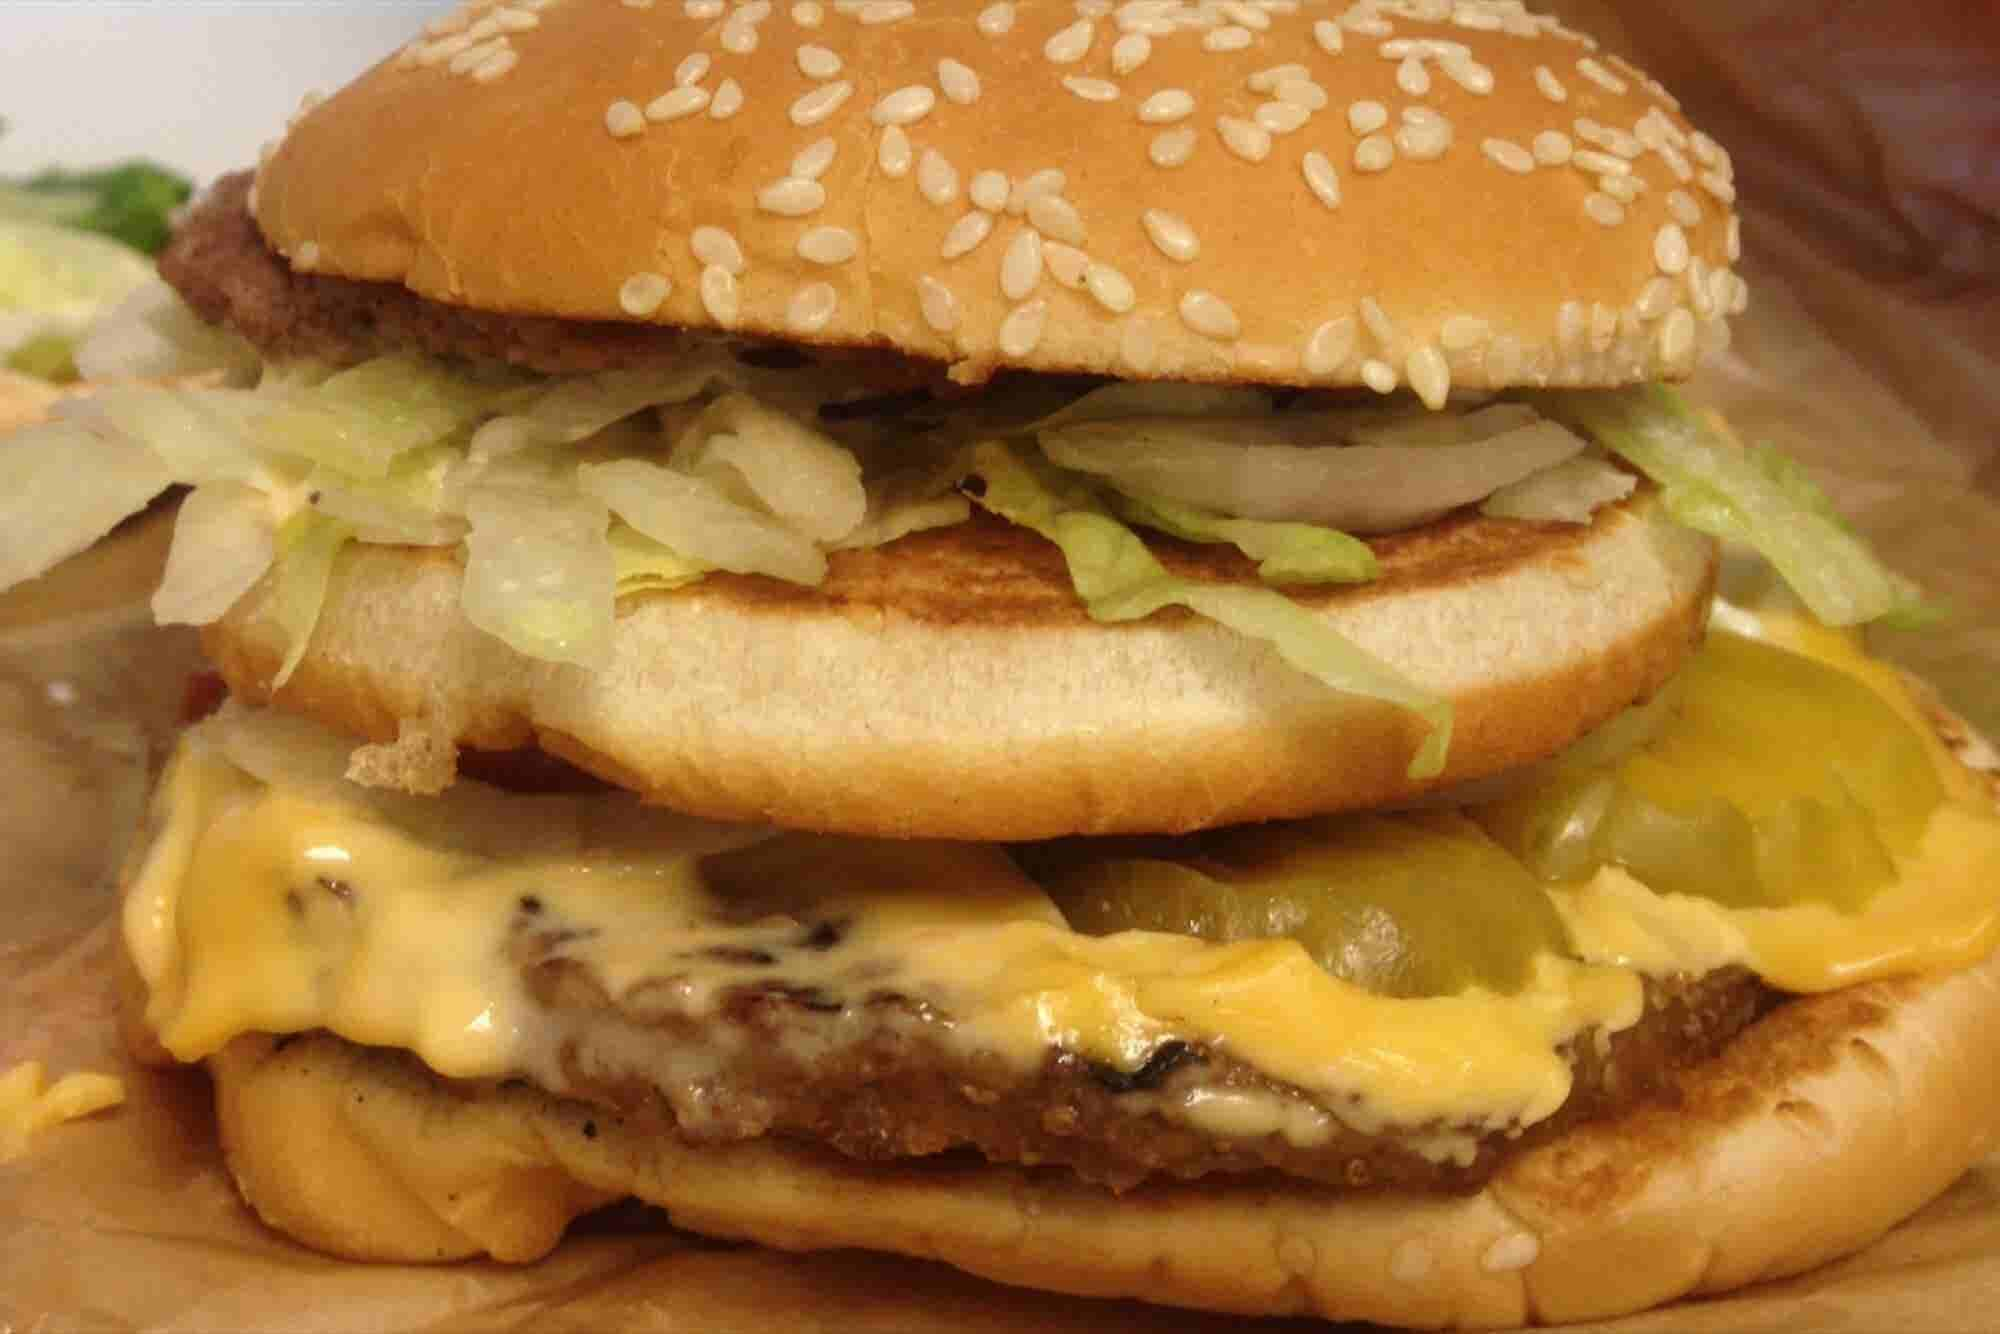 Here's What the McWhopper Would Actually Look Like